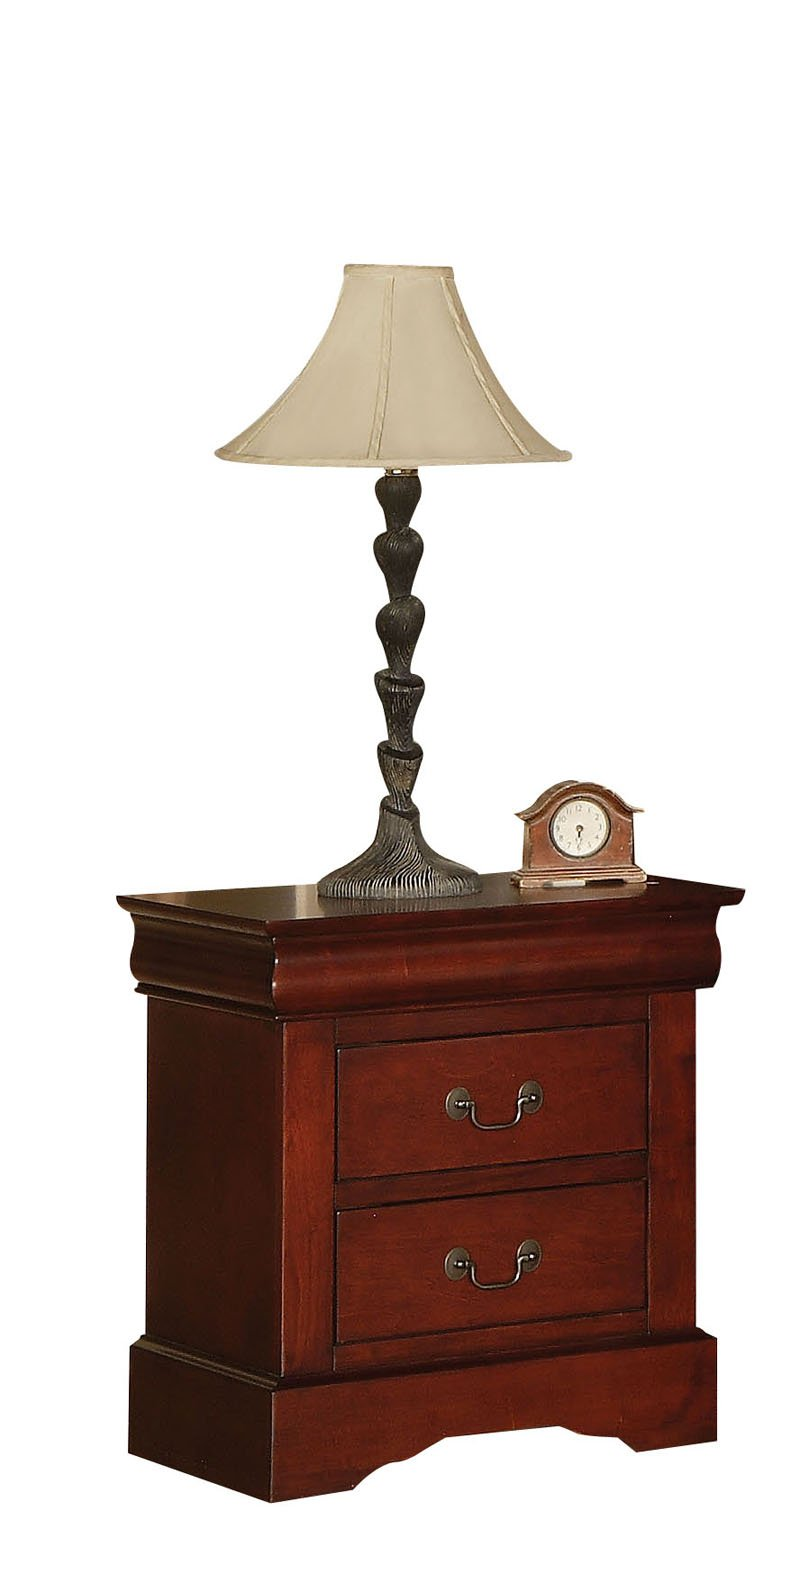 Acme 19523 Louis Philippe III Nightstand, Cherry Finish by acme